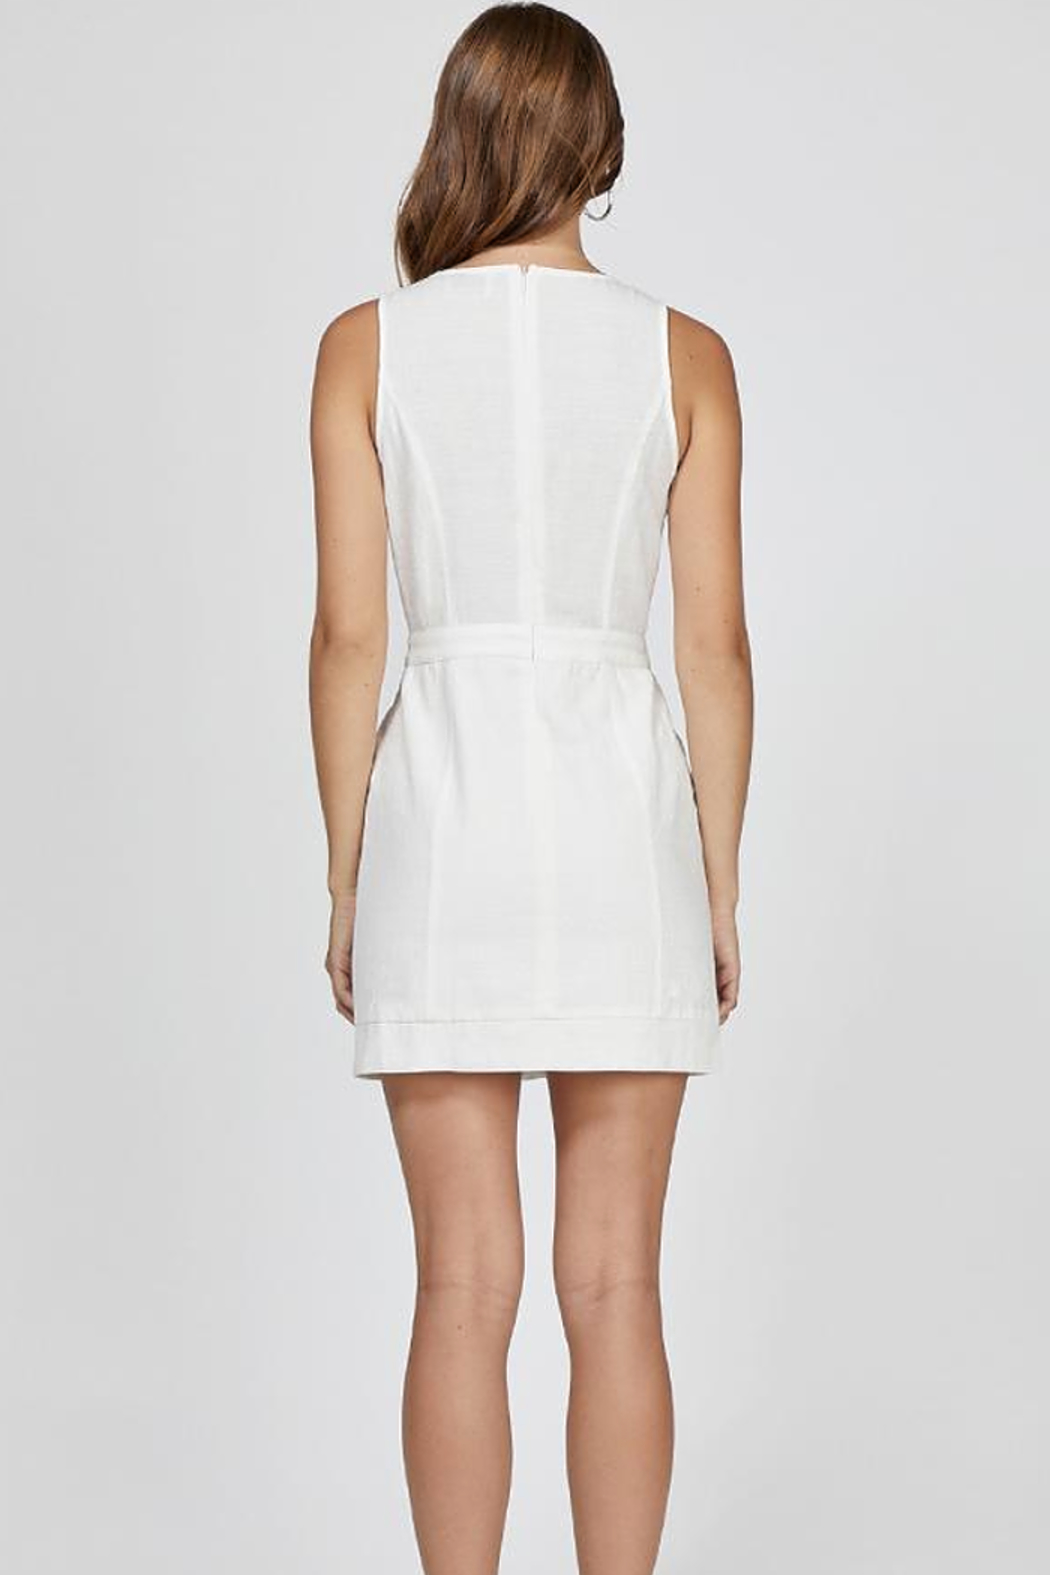 Greylin Althea Button Up Dress - Side Cropped Image